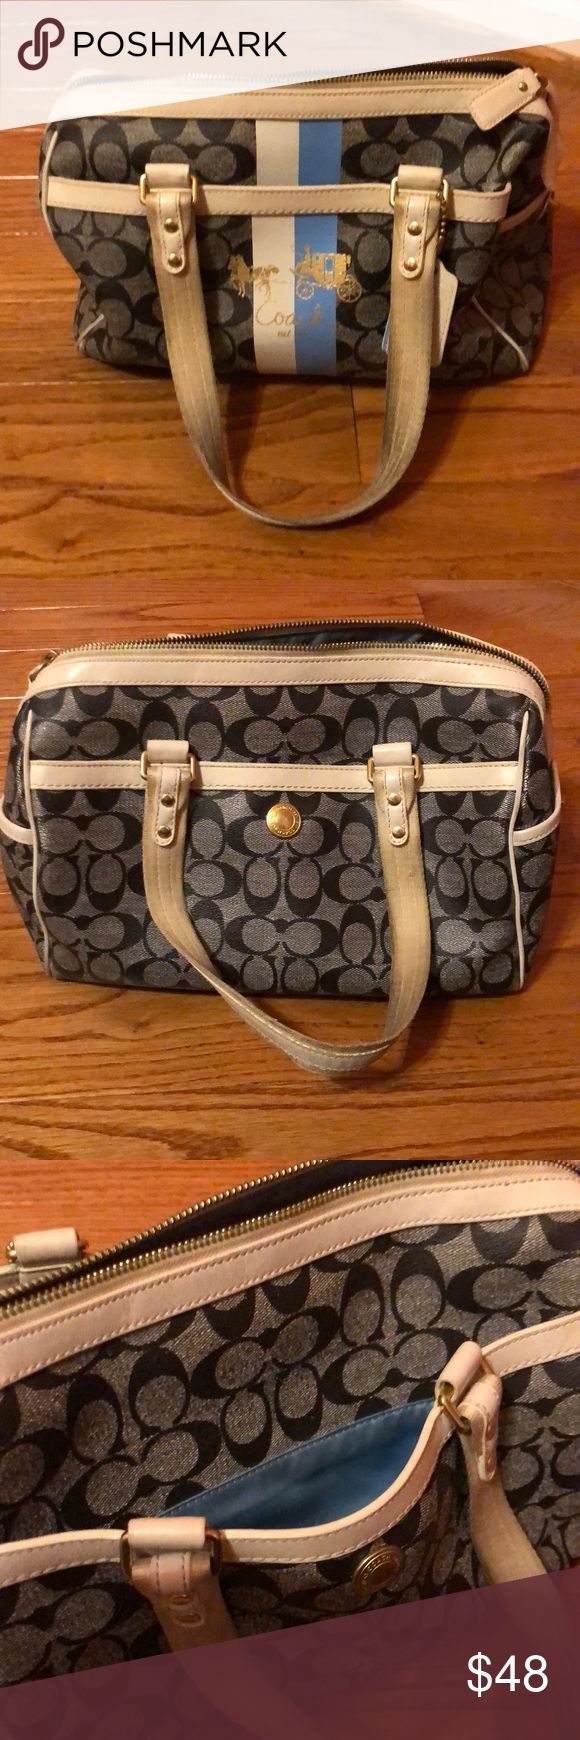 Coach satchel Coach satchel with lots of pockets. Very cute with casual outfits. Needs to be cleaned lightly. Coach Bags Satchels